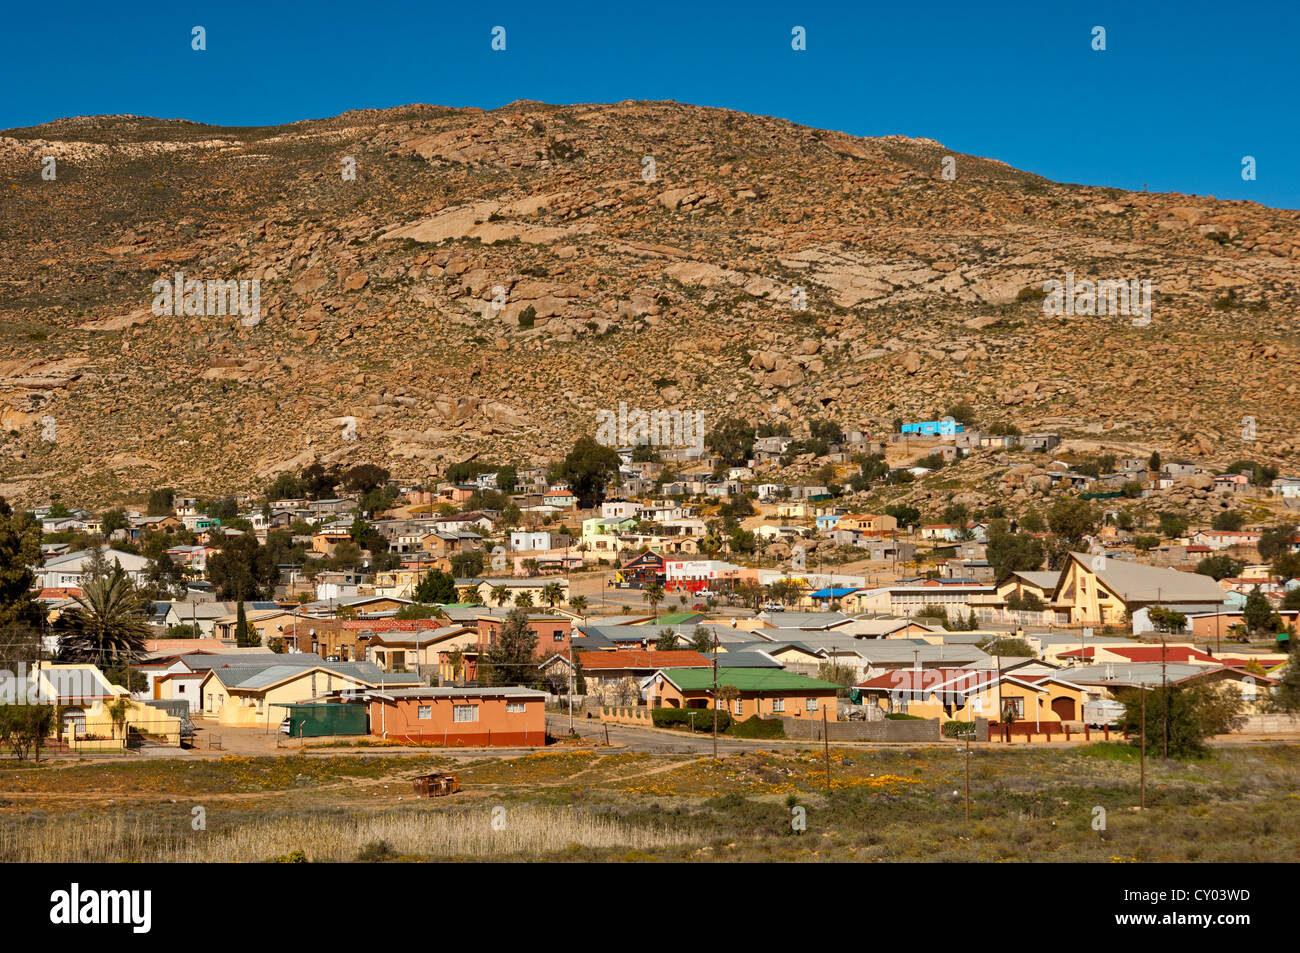 Houses of springbok in front of the bare hills of for Outdoor photo south africa